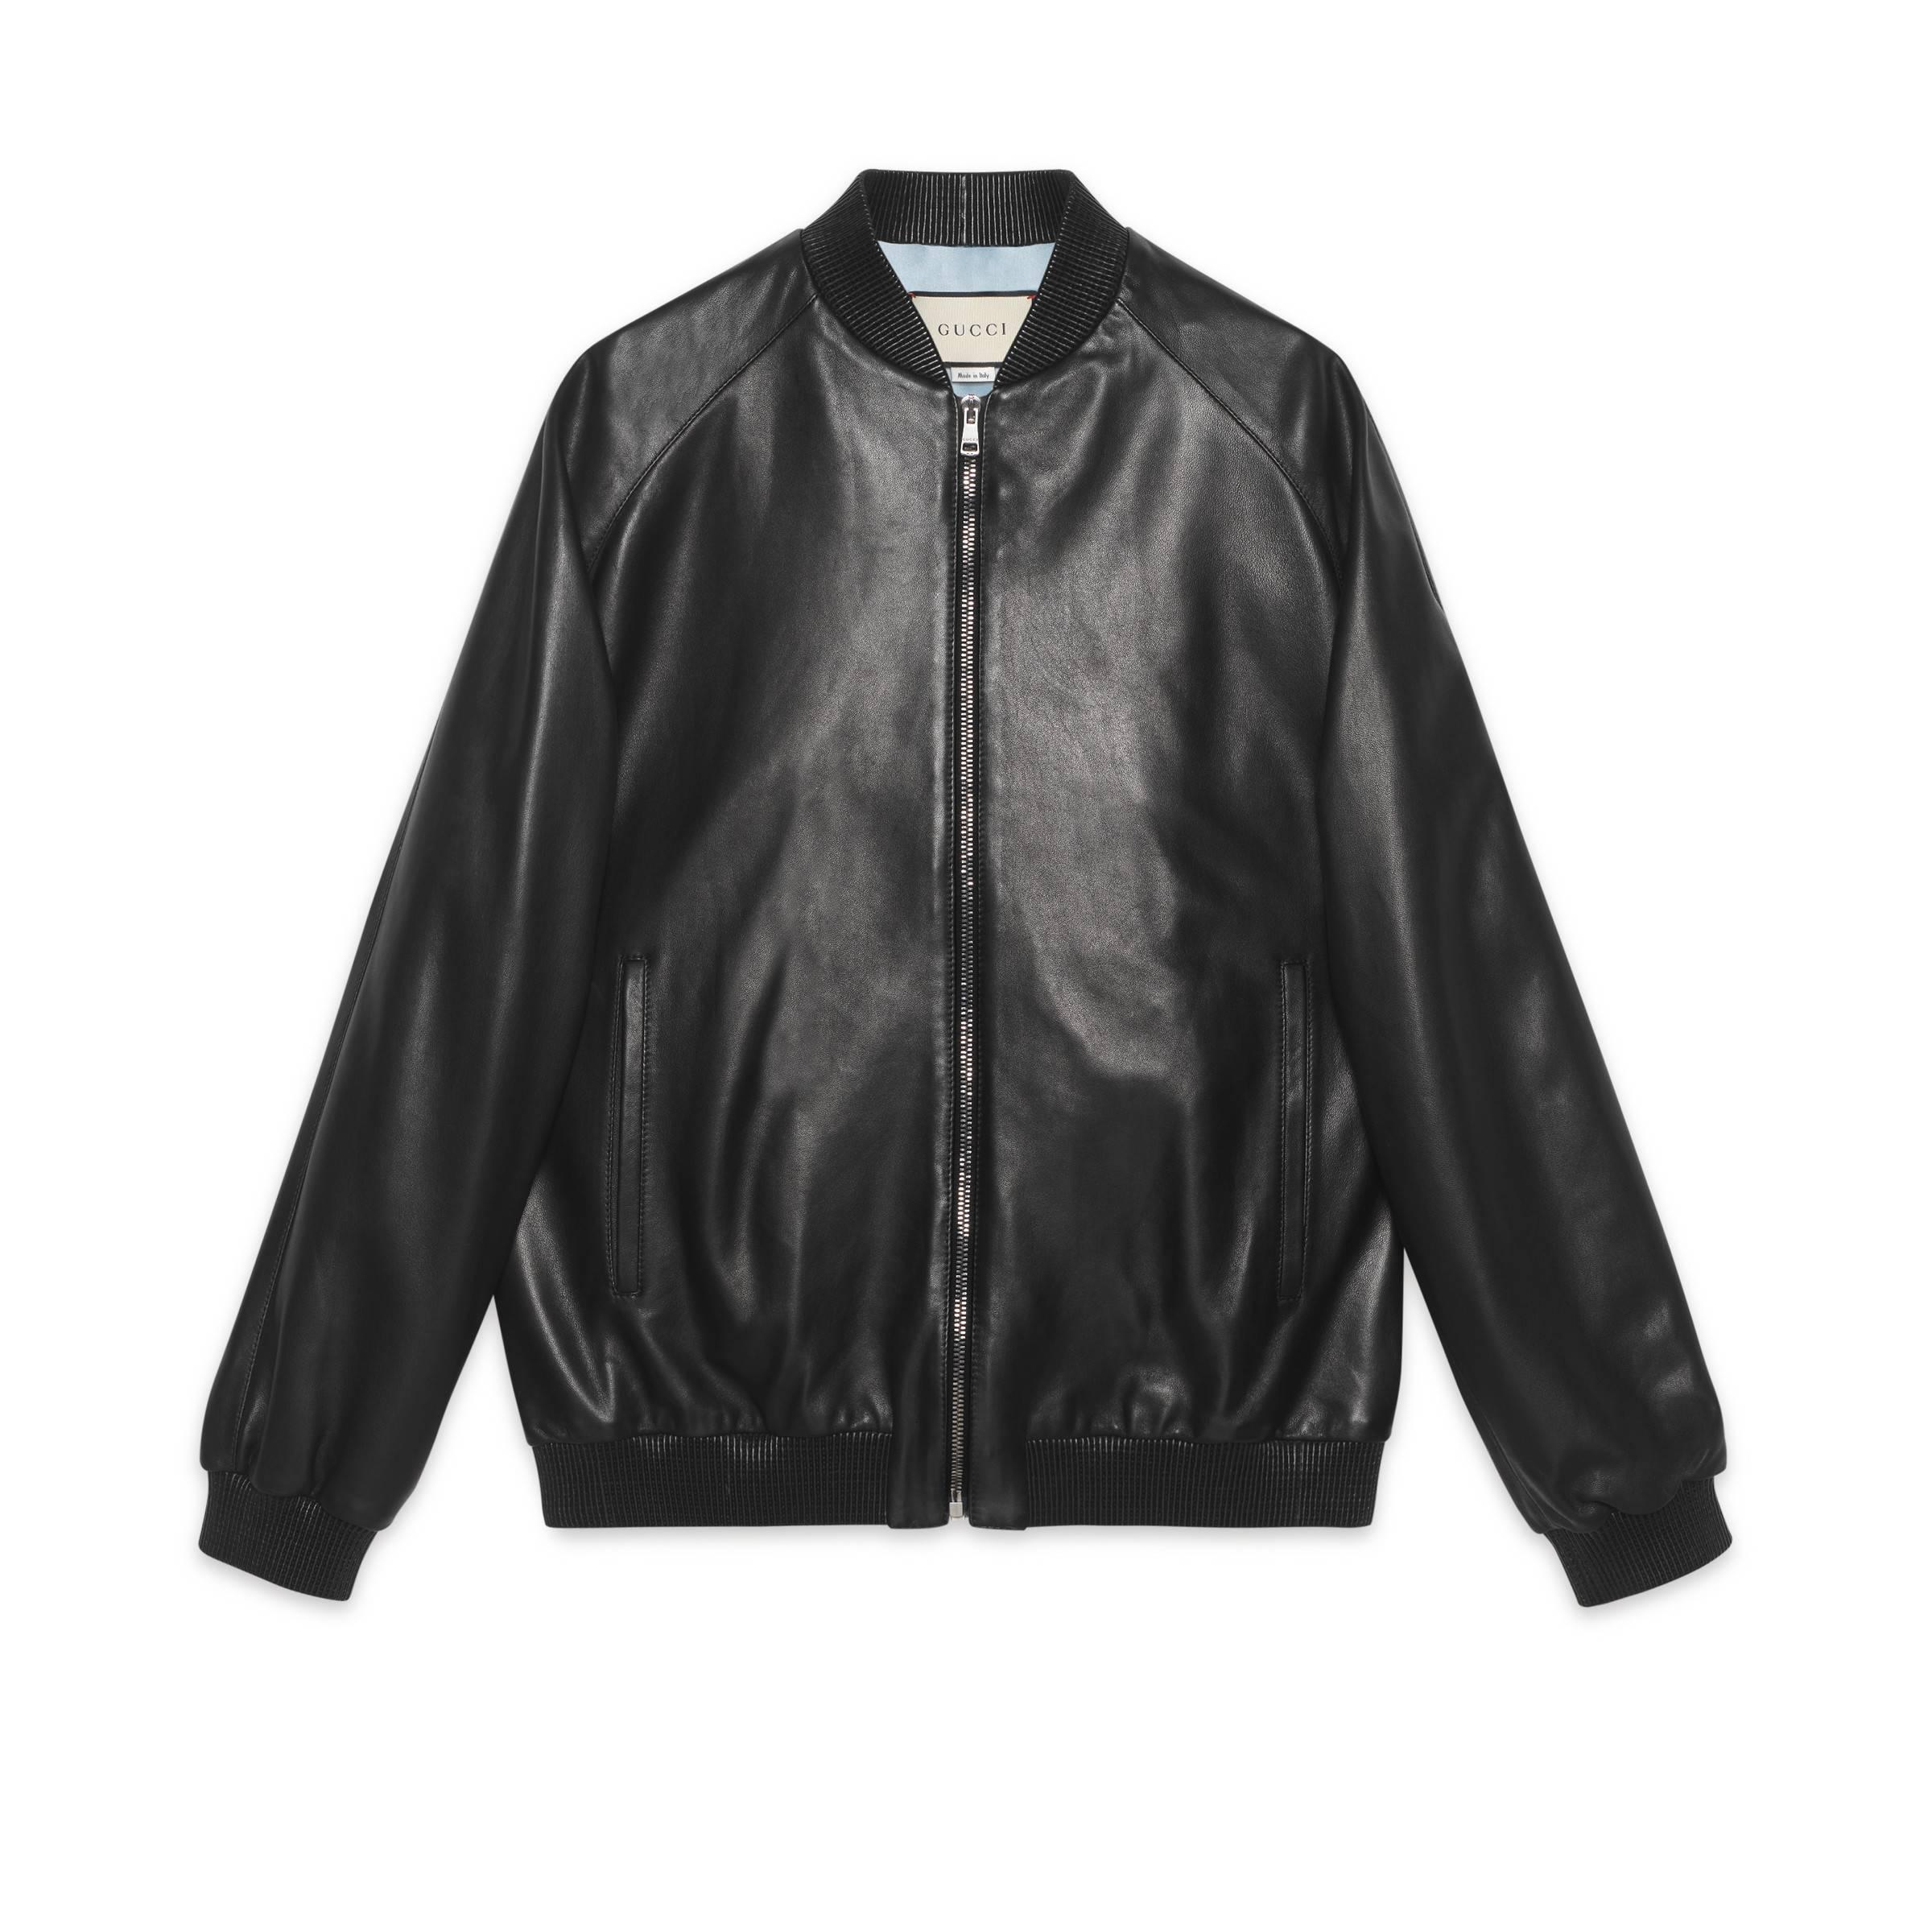 1a1603d39 Gucci Leather Bomber With Paramount Logo in Black - Lyst